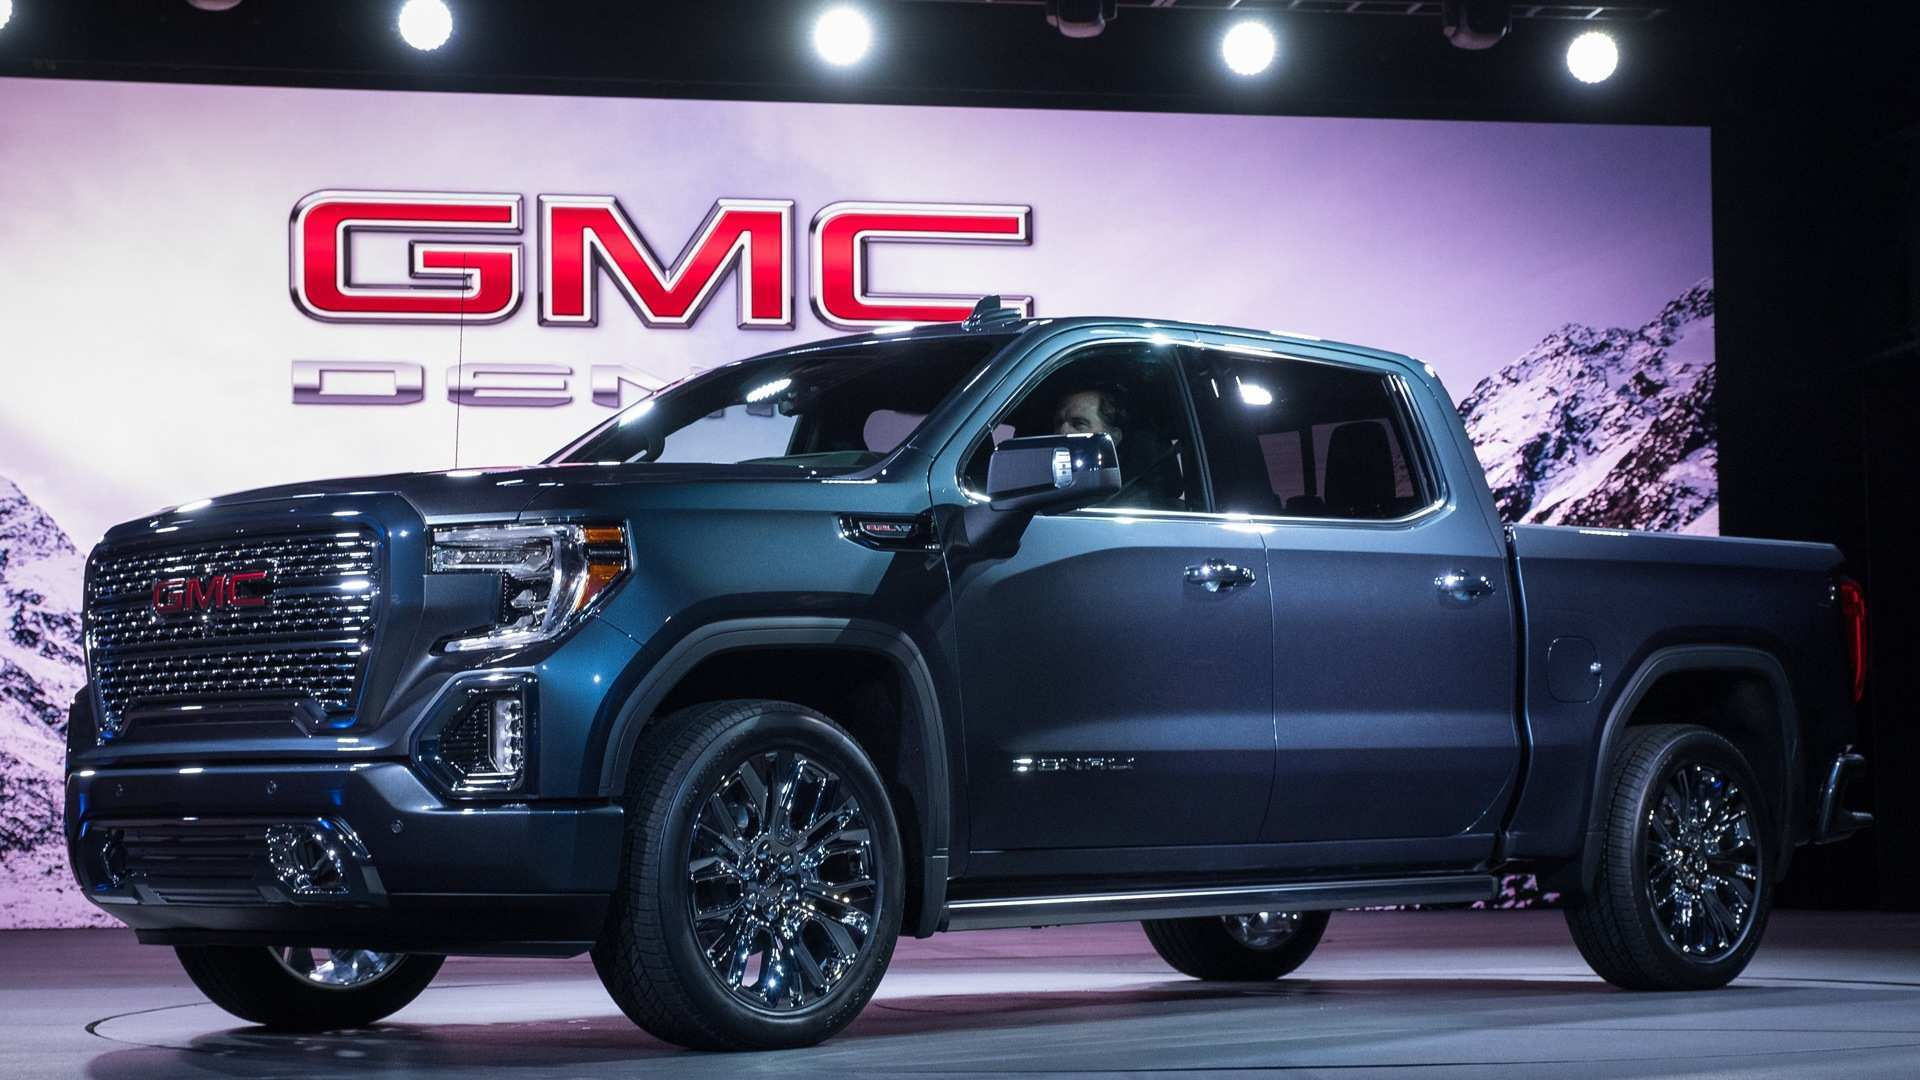 90 Concept of 2019 Gmc Pickup Release Date Exterior and Interior with 2019 Gmc Pickup Release Date